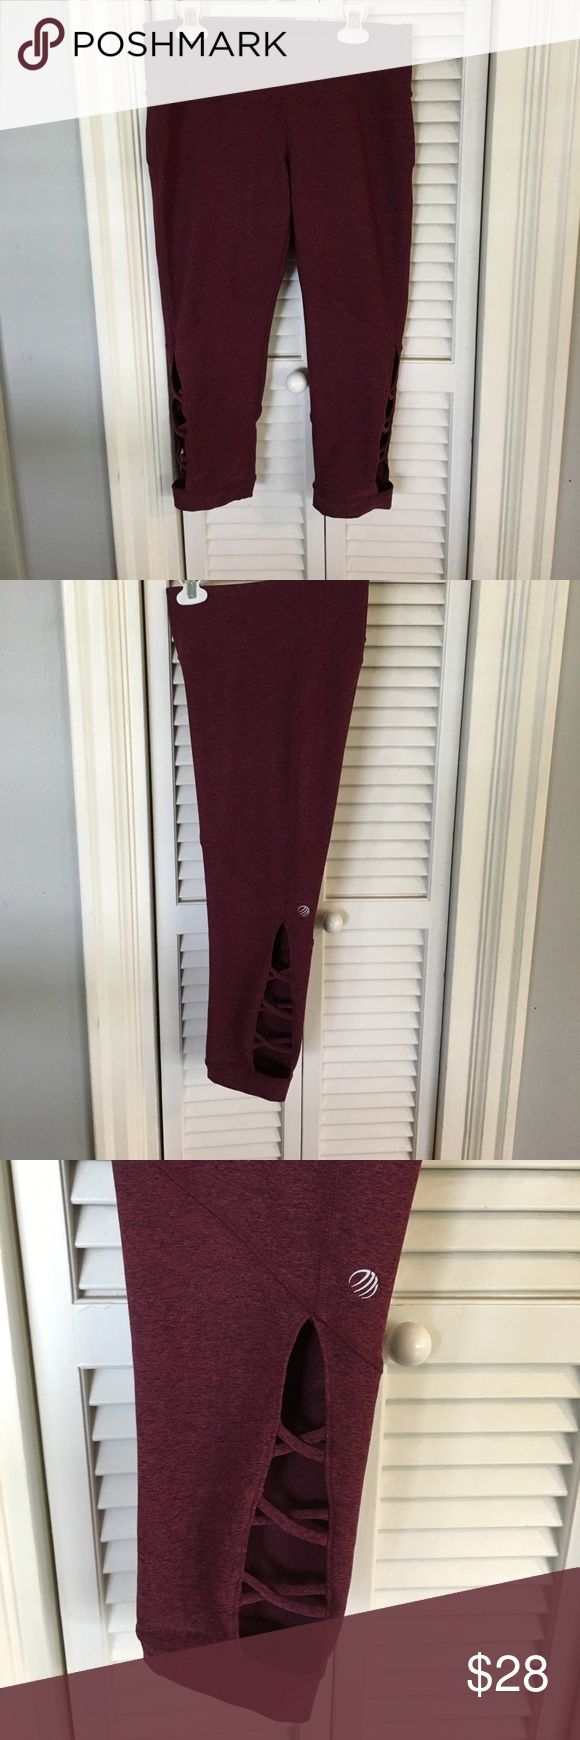 MPG Maroon Leggings (Cropped) Never been worn, really cute design on the bottom legs, just find myself never wearing it. Women's Small enjoy! MPGsport Pants Leggings